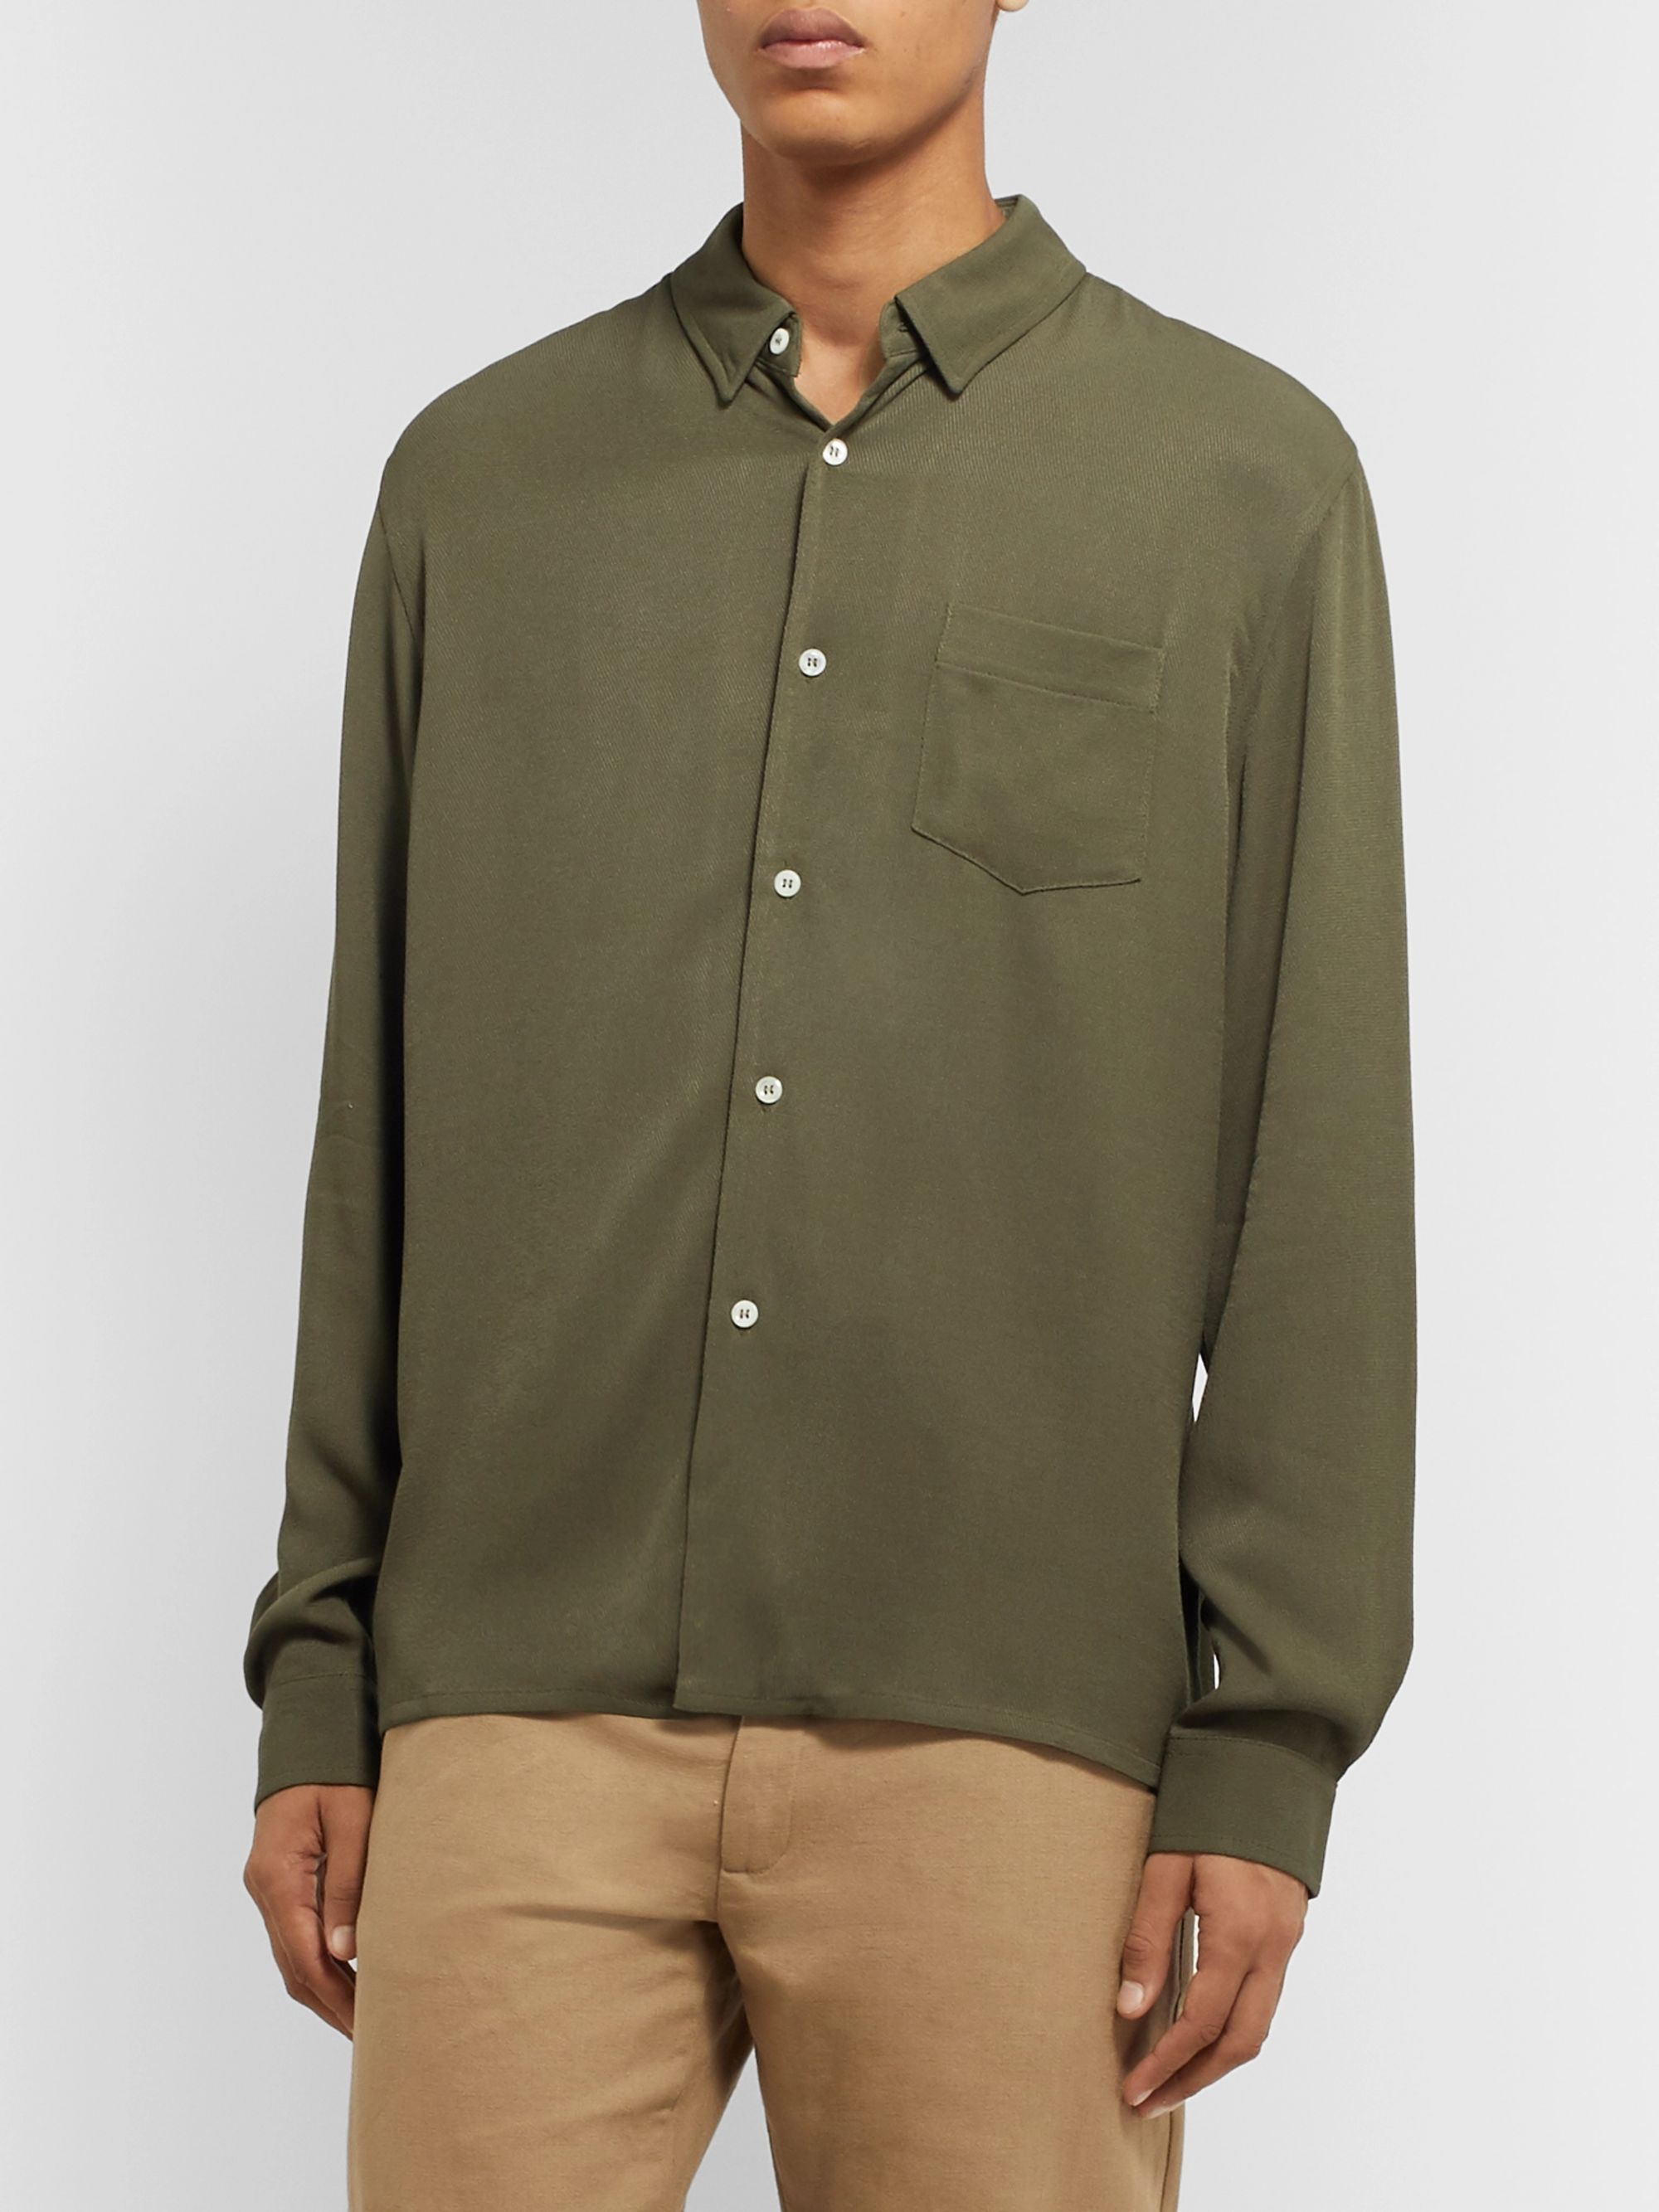 Séfr Hampus Crepe Shirt